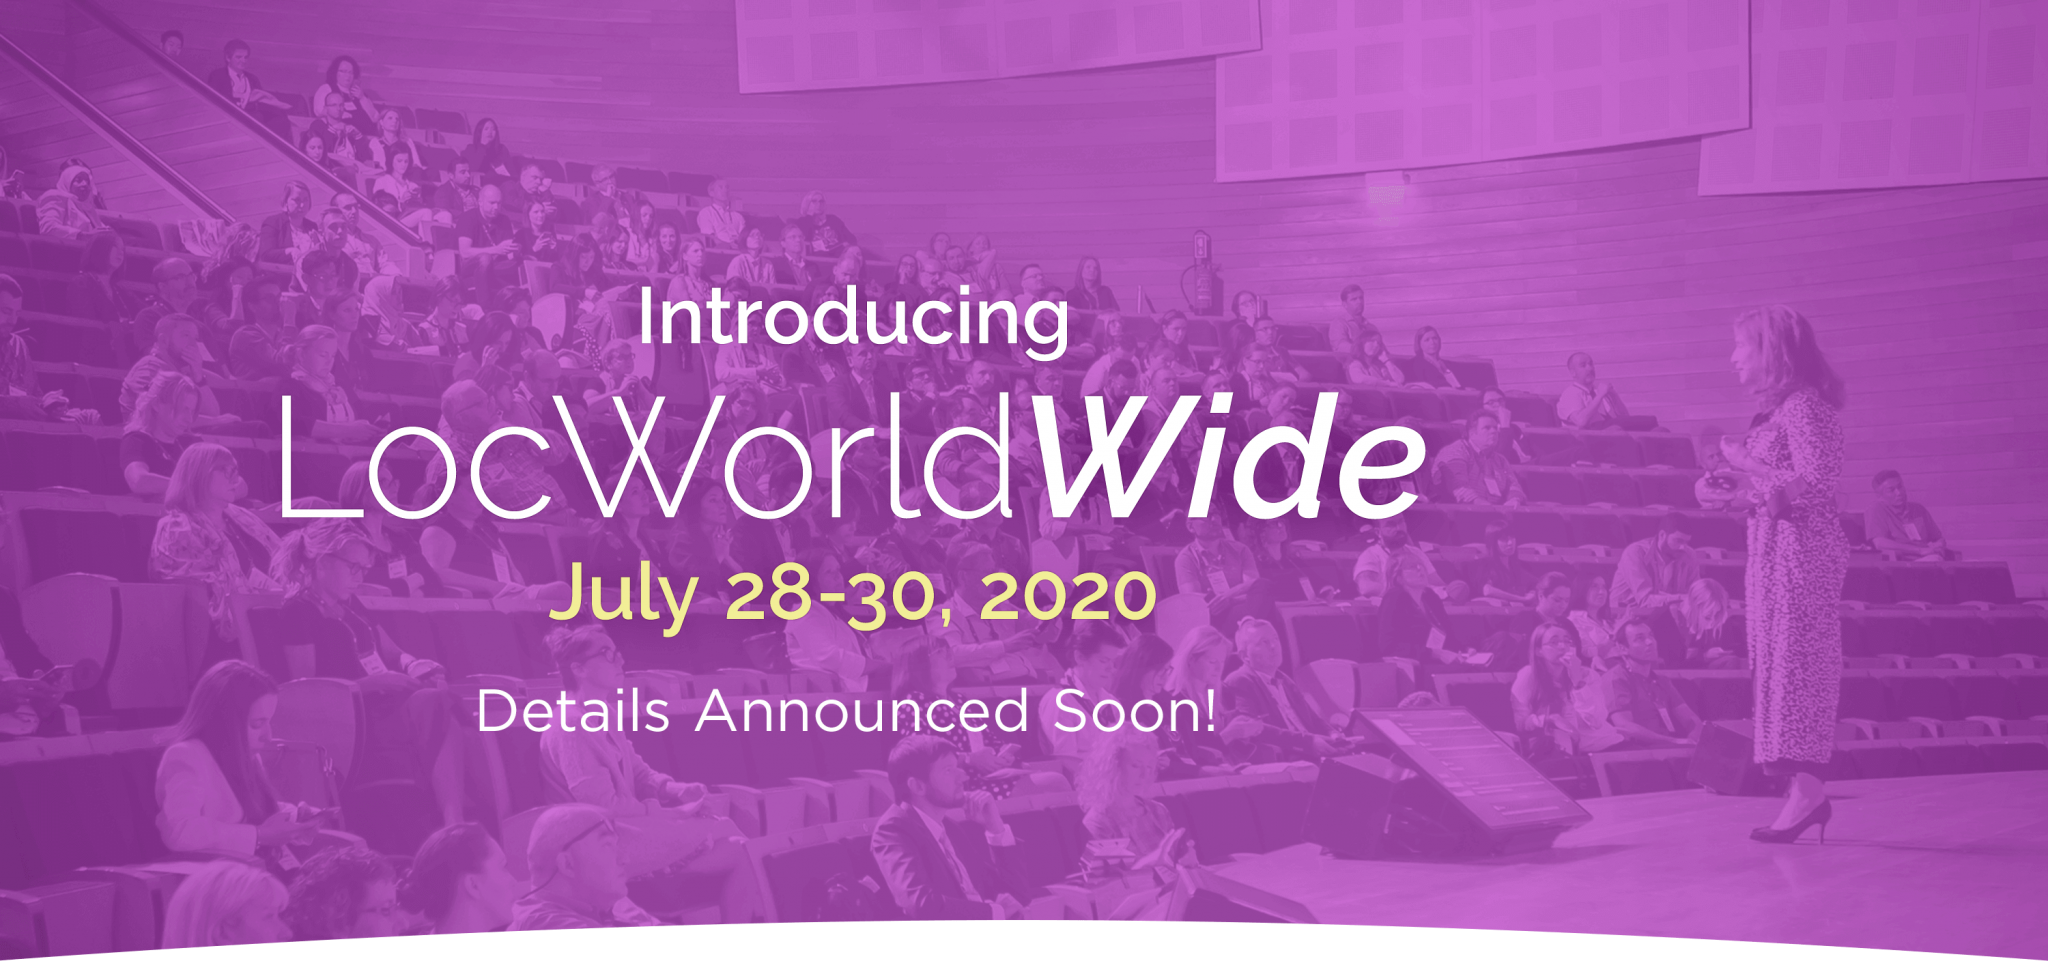 LocWorldWide42. July 28-30, 2020.